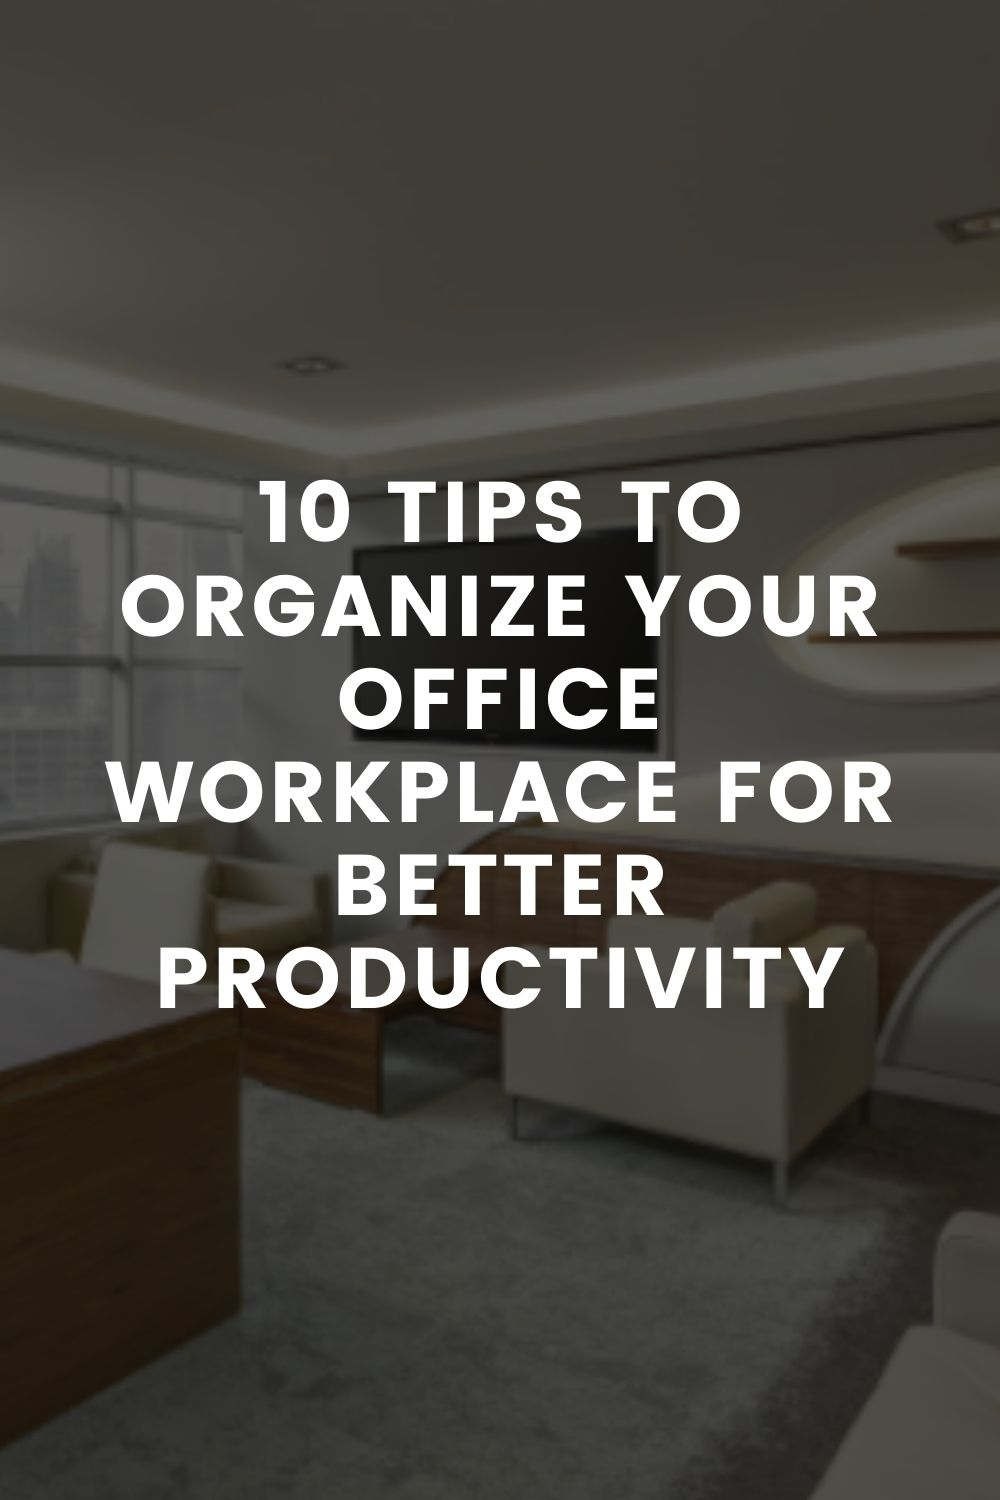 10 Tips to Organize Your Office Workplace for Better Productivity